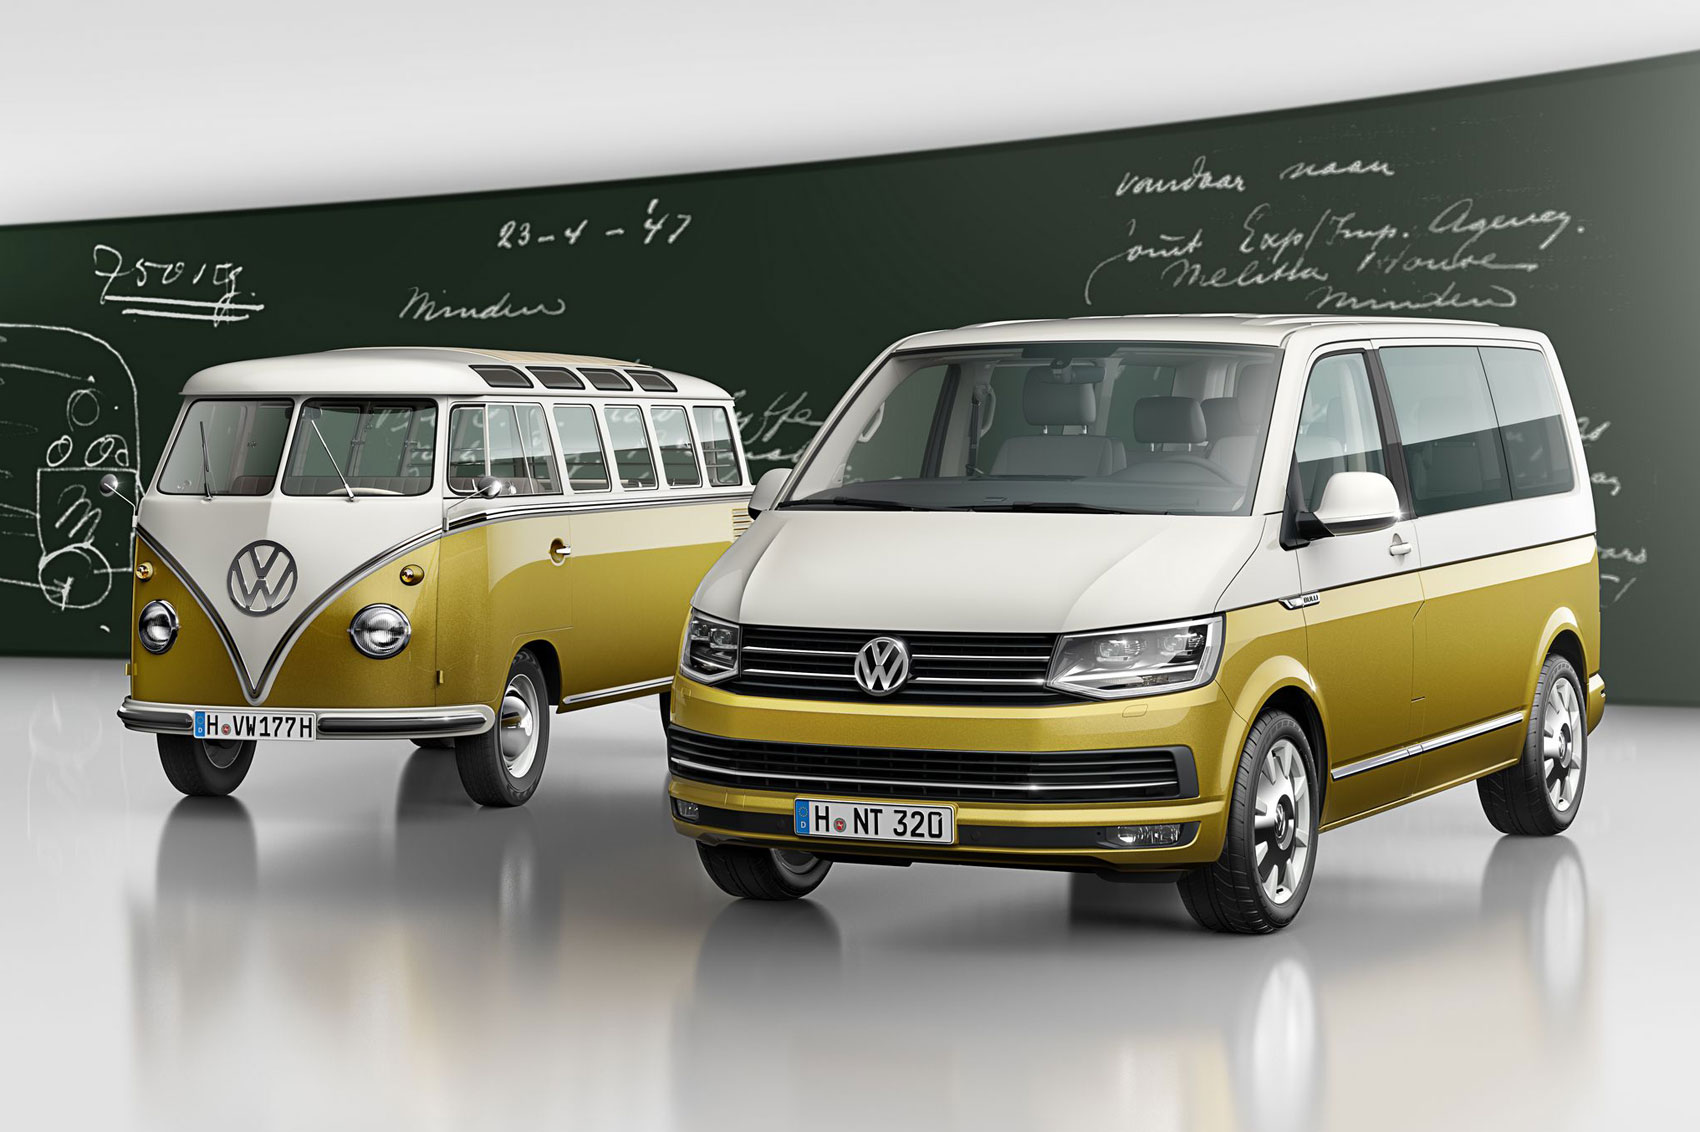 vw launches petrol powered transporter tsi models in the uk parkers. Black Bedroom Furniture Sets. Home Design Ideas